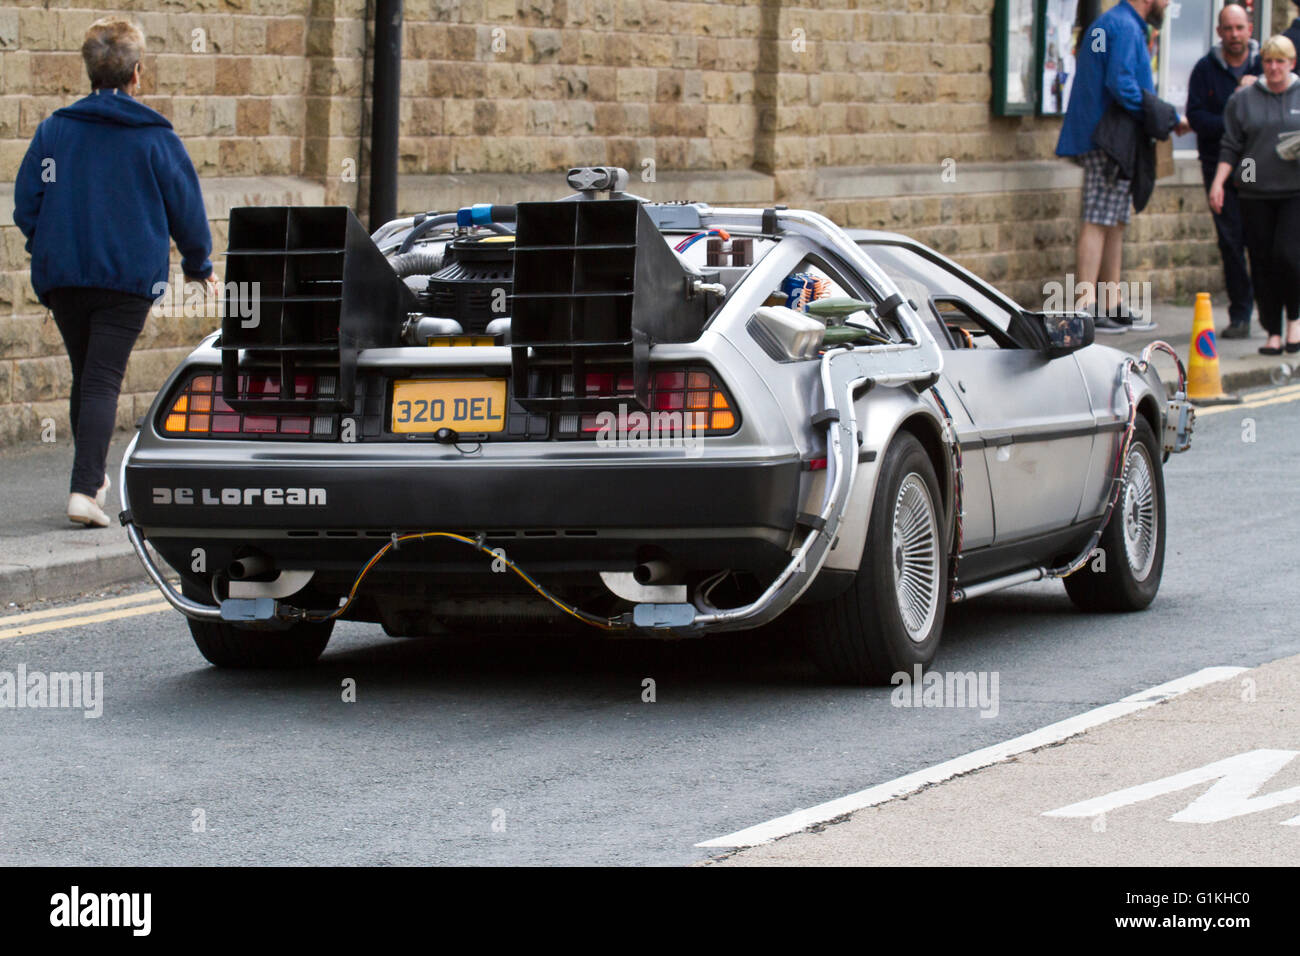 der delorean dmc 12 sport auto haworth yorkshire. Black Bedroom Furniture Sets. Home Design Ideas